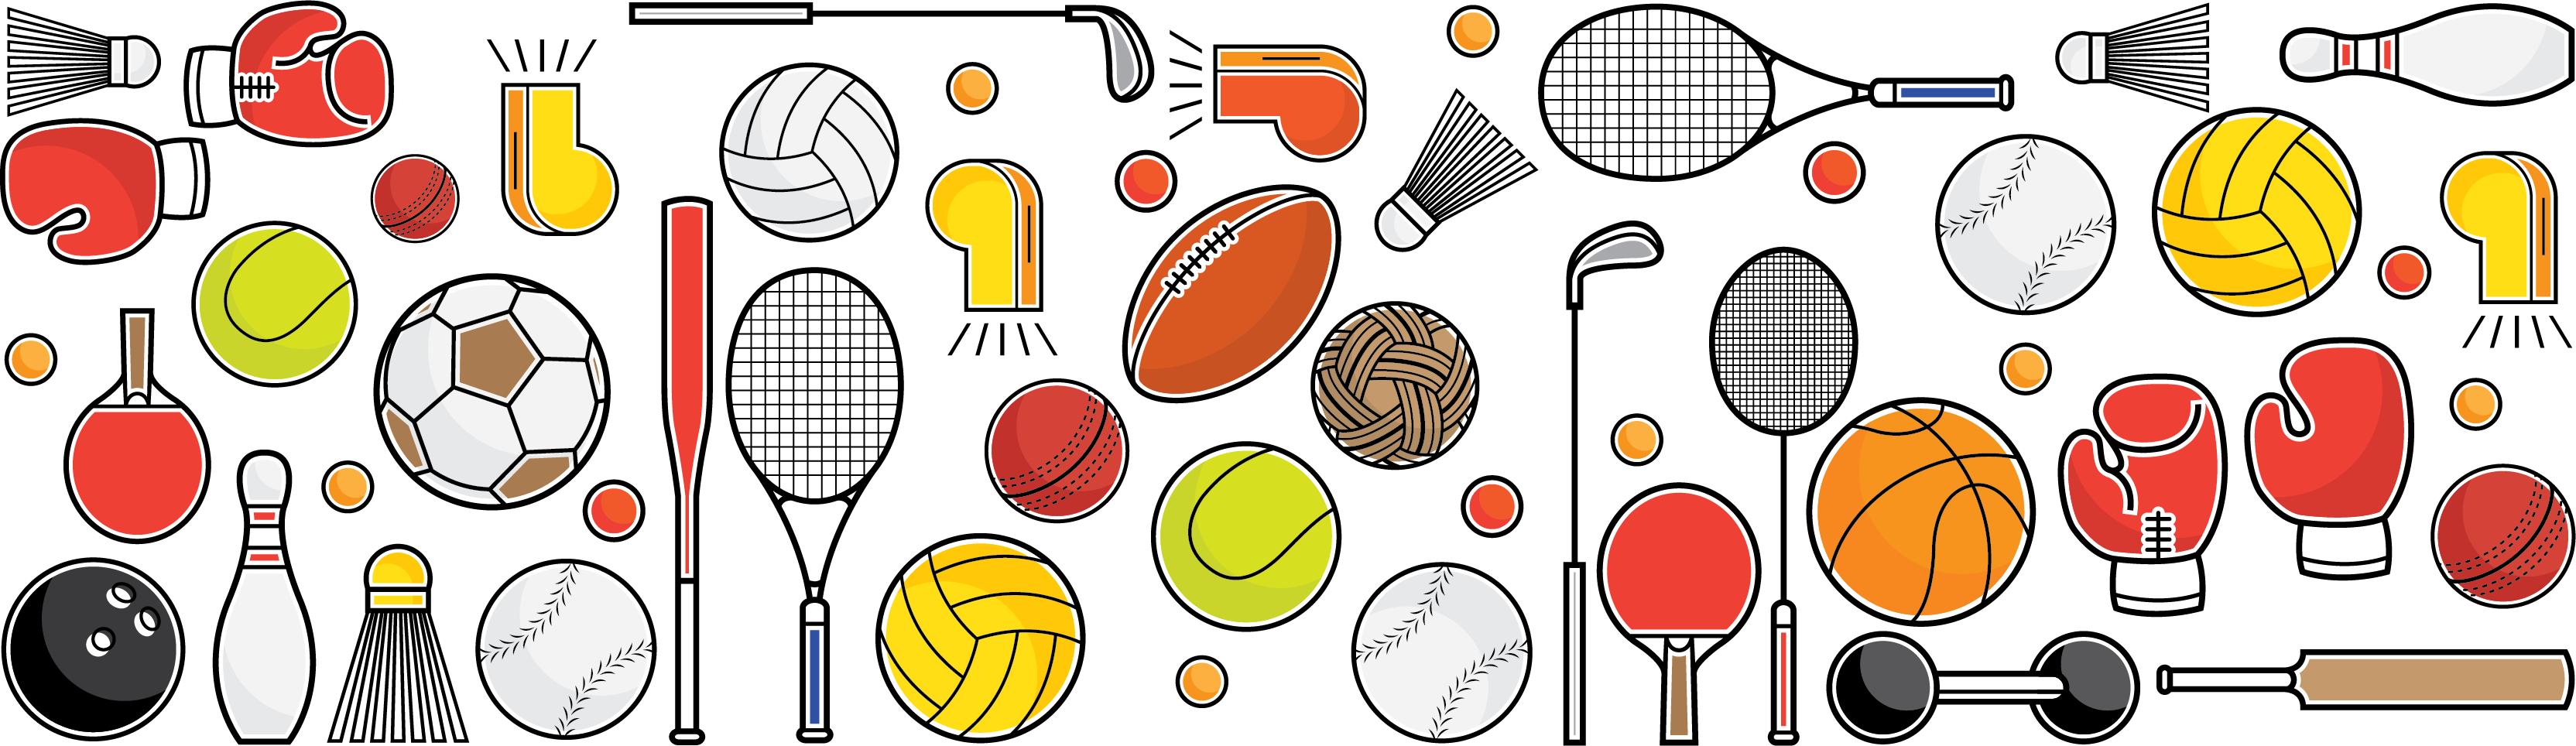 Graphic image of different types of sports equipment to represent many sports